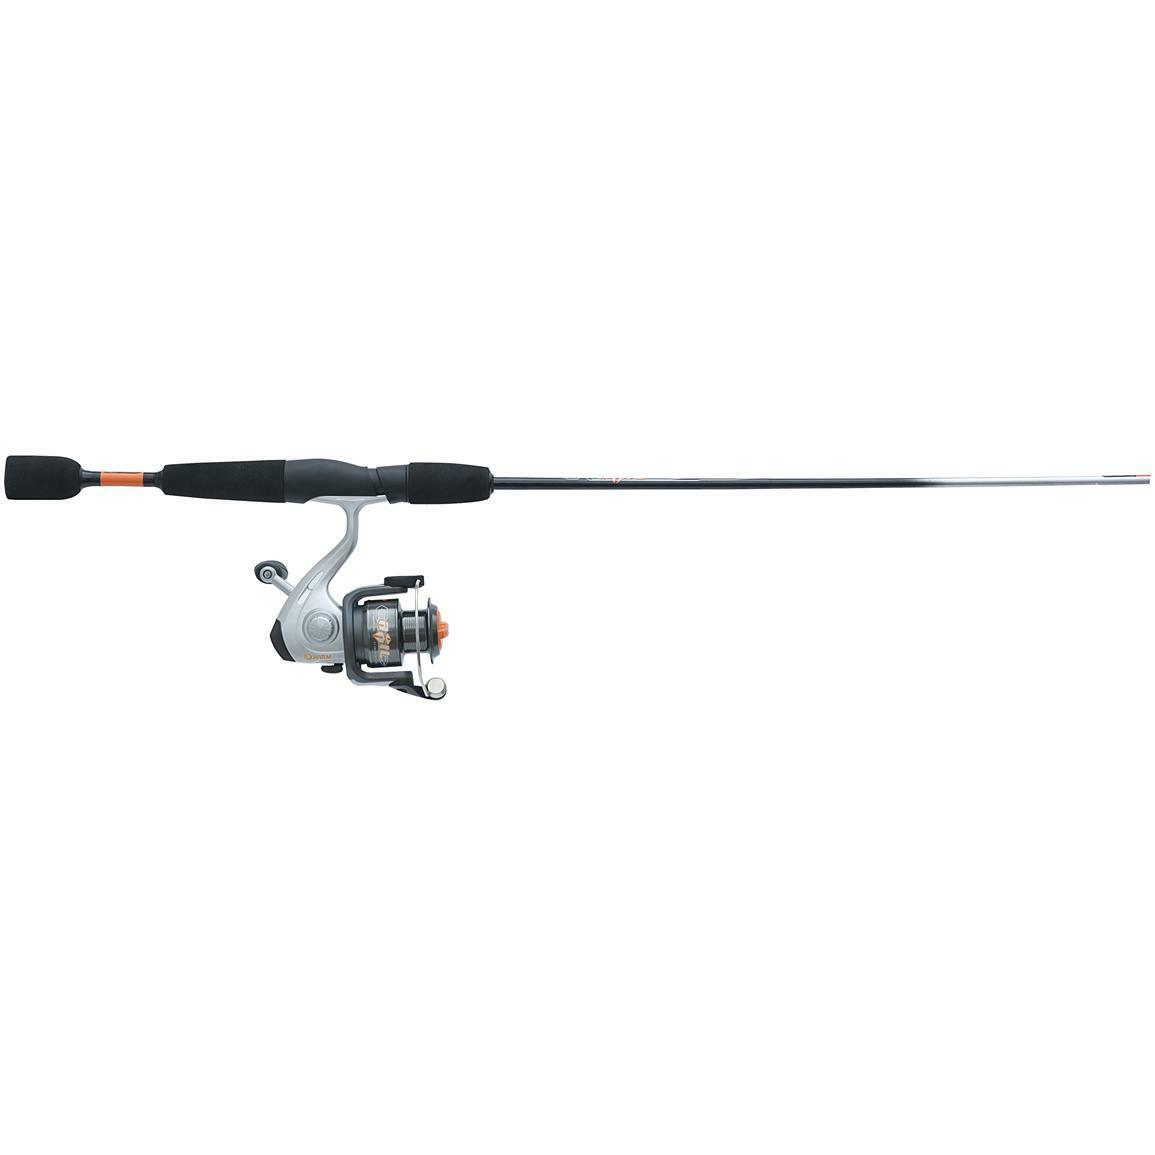 Quantum AXIL 6'6  Medium Spinning  Fishing Combo AXL30662M  outlet online